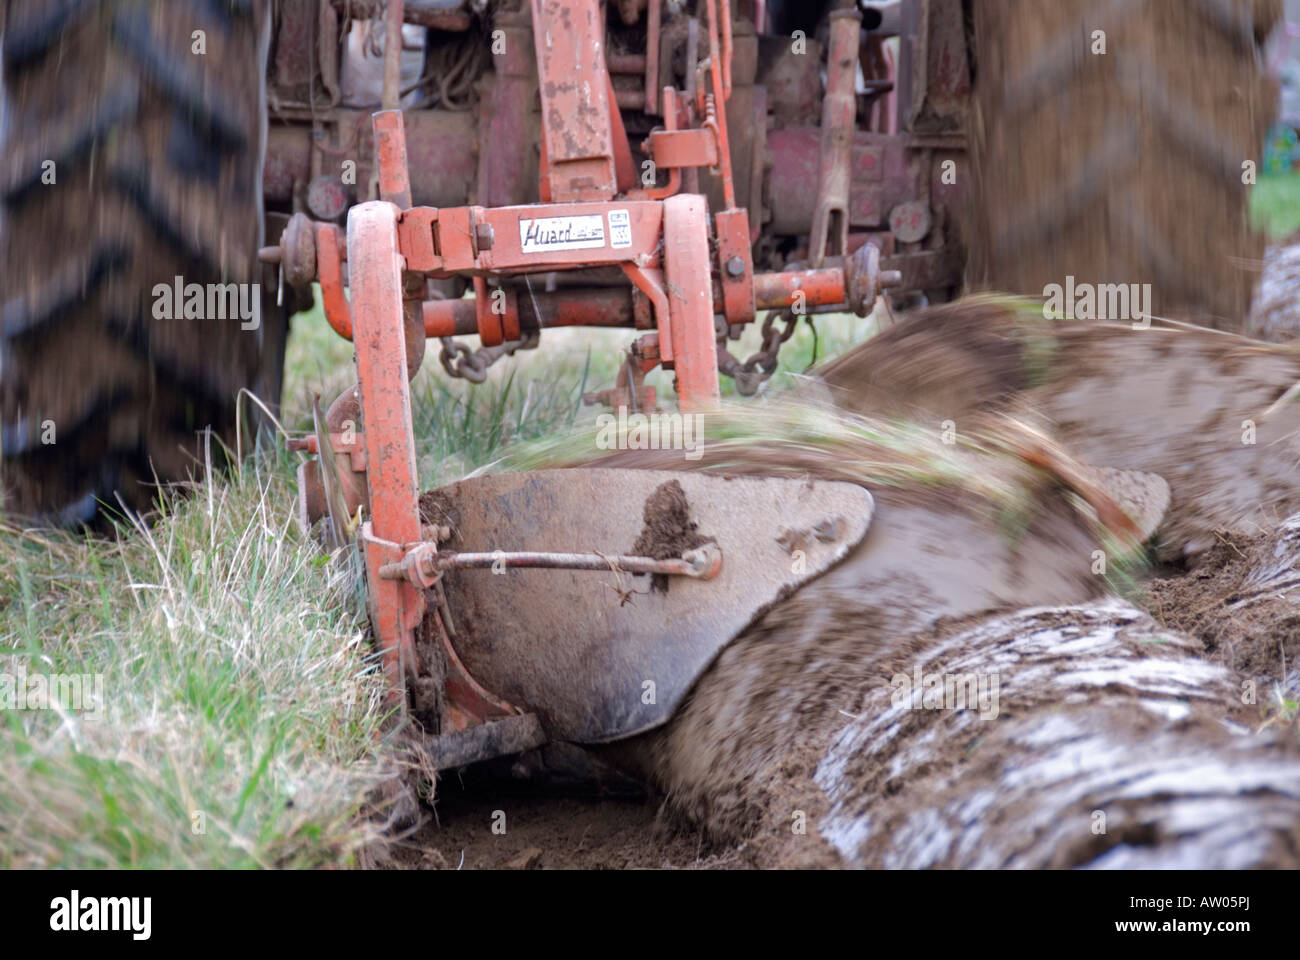 Stock photo of a plough turning the earth The picture was taken in France - Stock Image